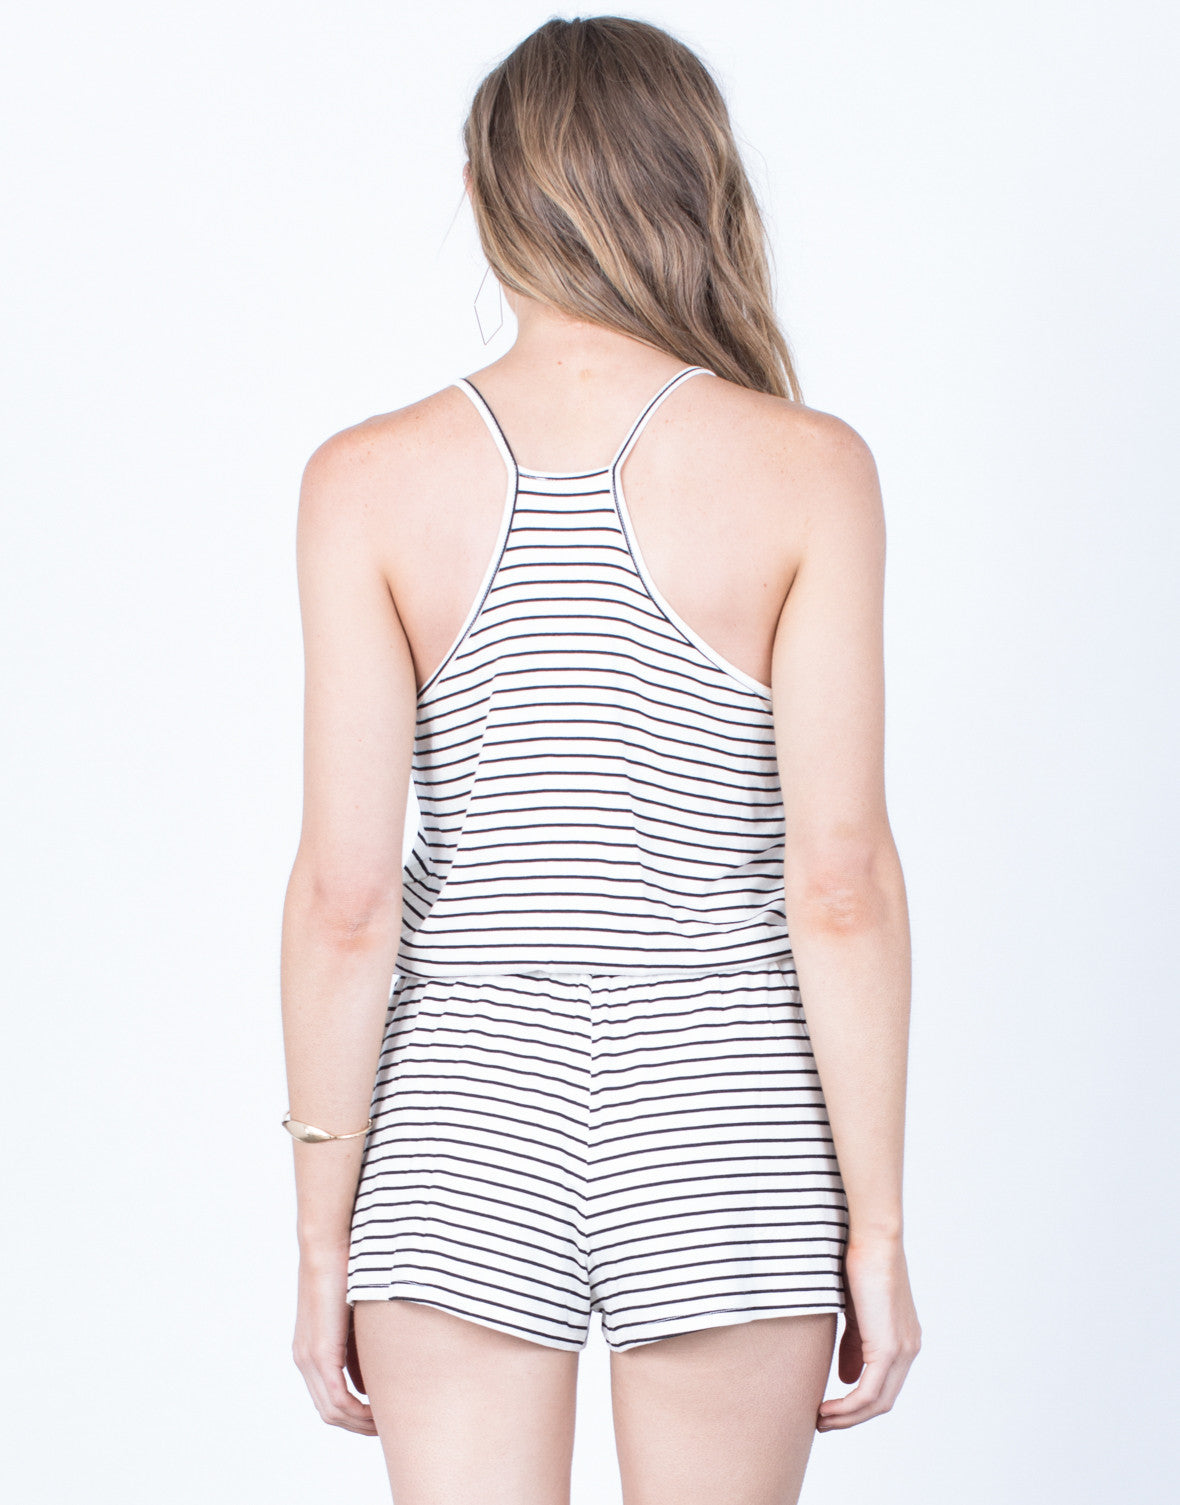 Back View of All Striped Up Romper